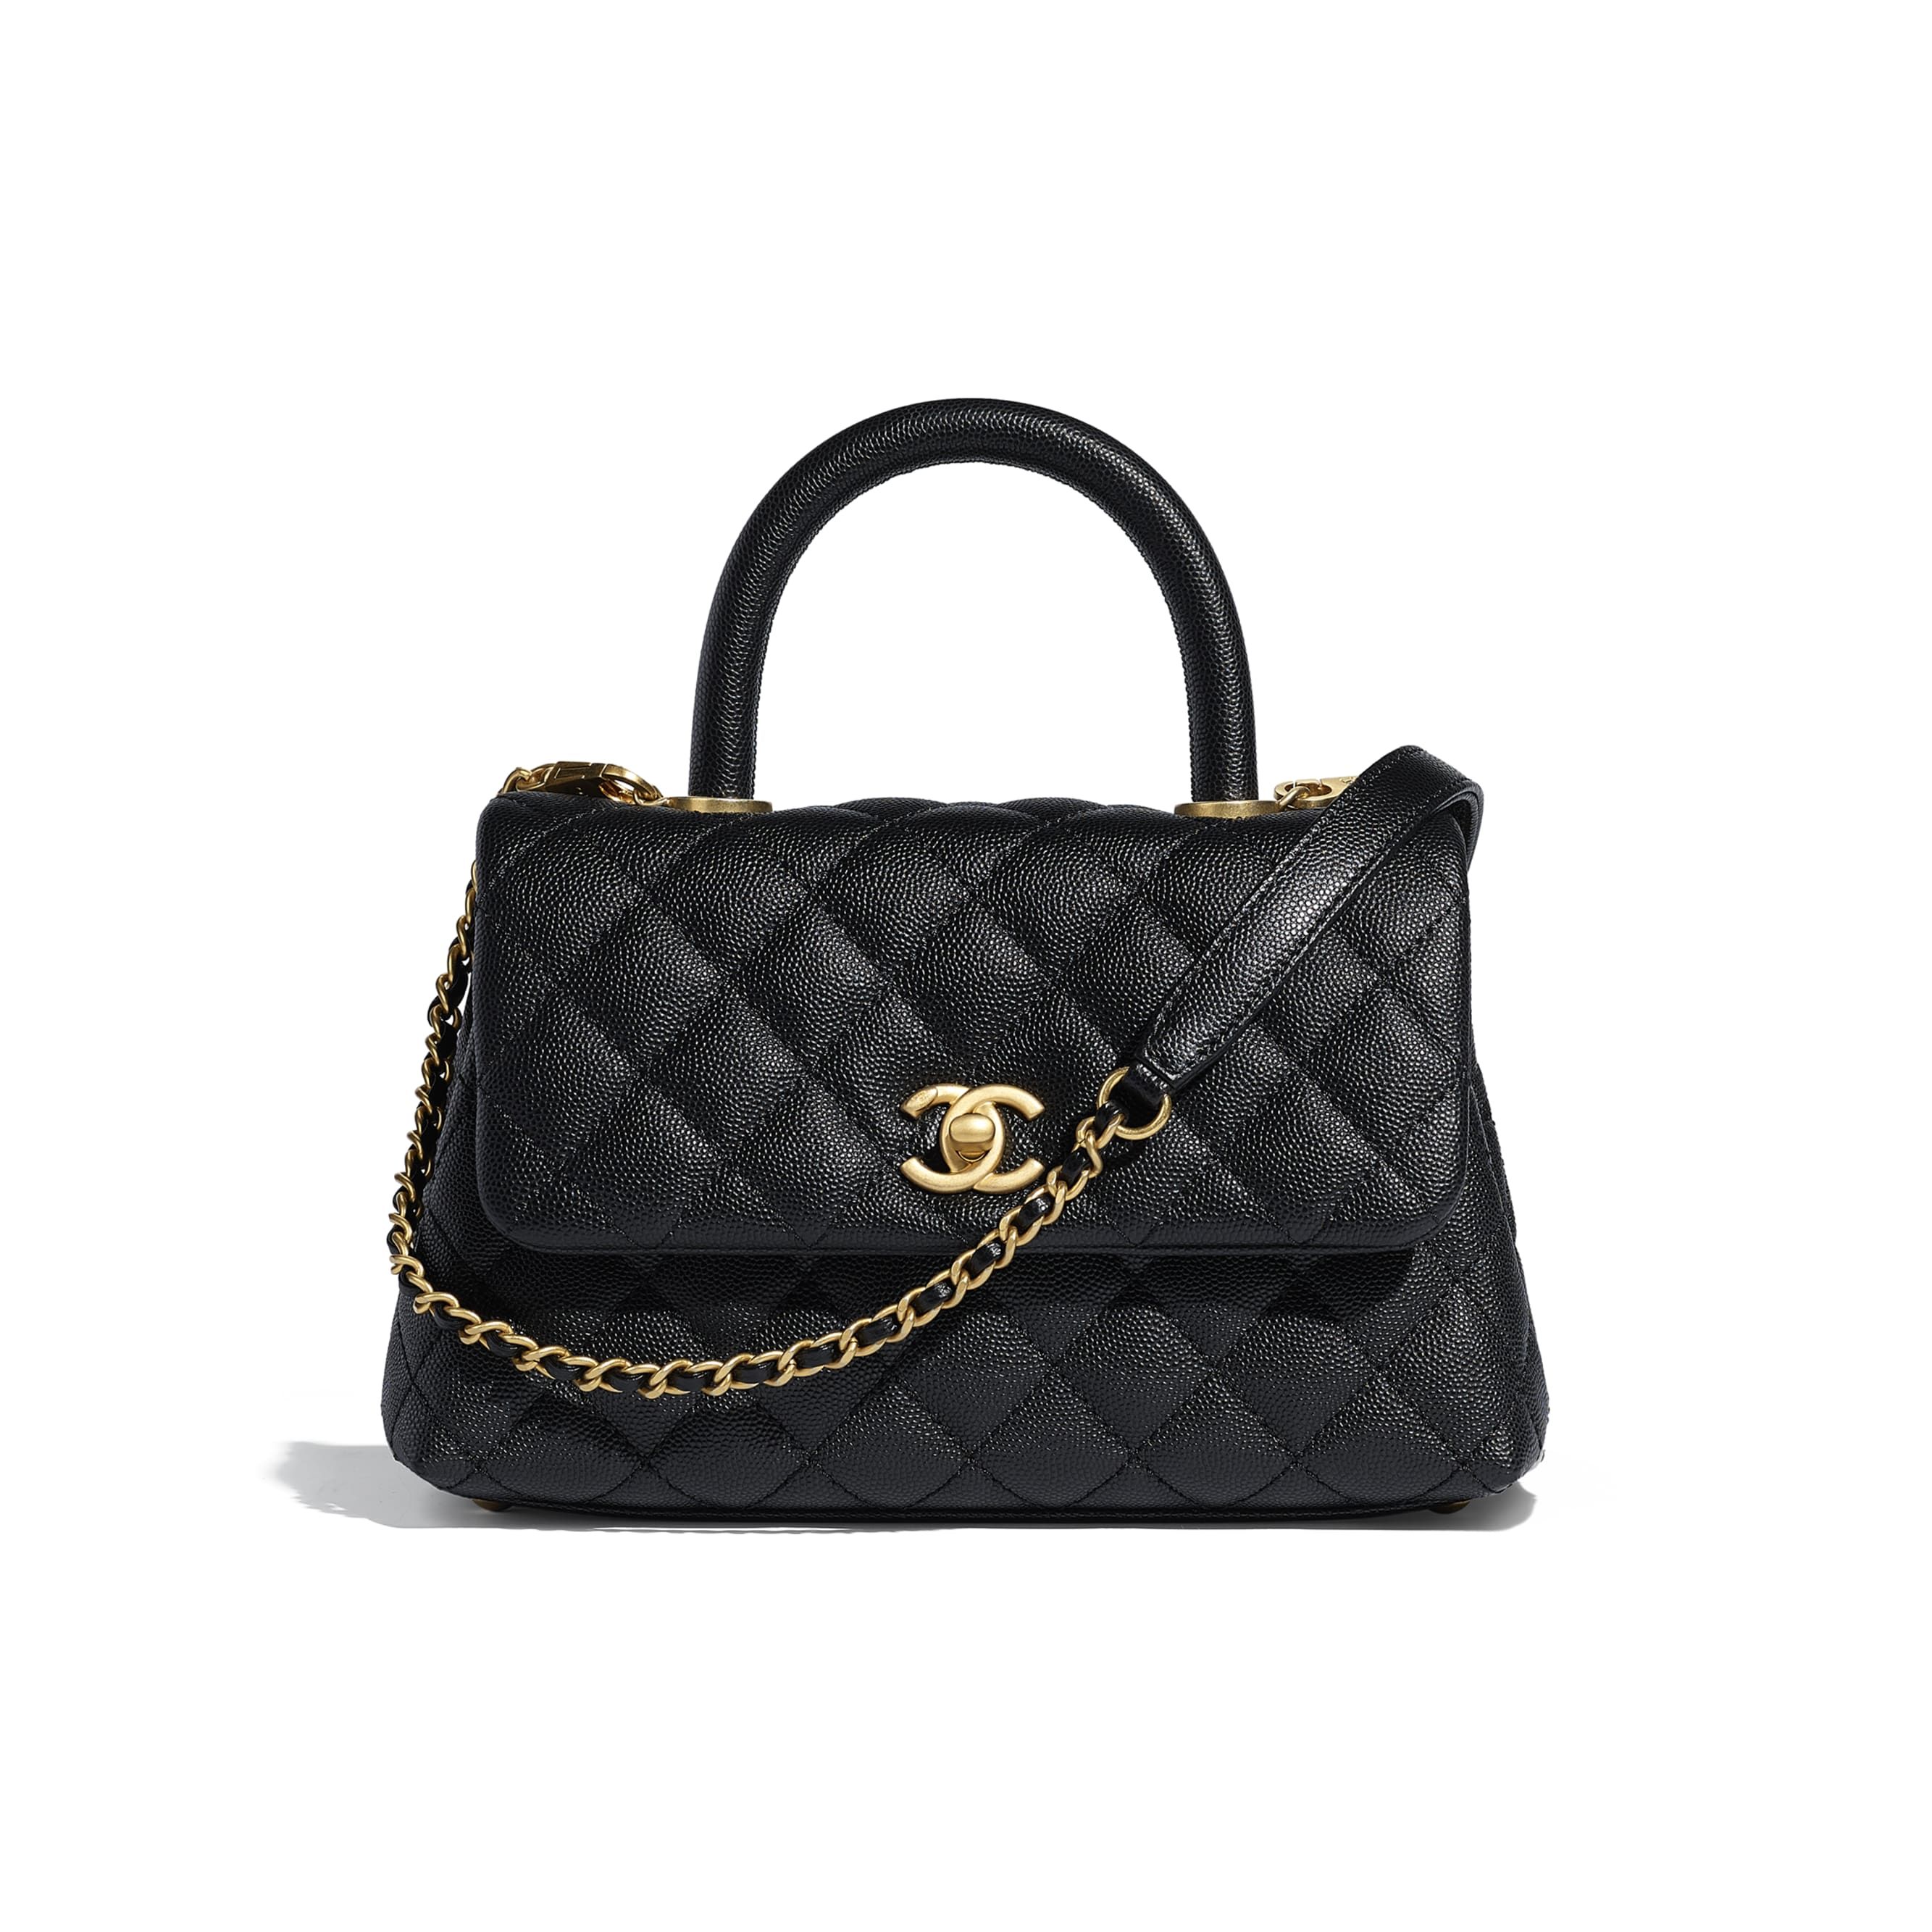 Small Flap Bag With Top Handle - Black - Grained Calfskin & Gold-Tone Metal - Default view - see standard sized version